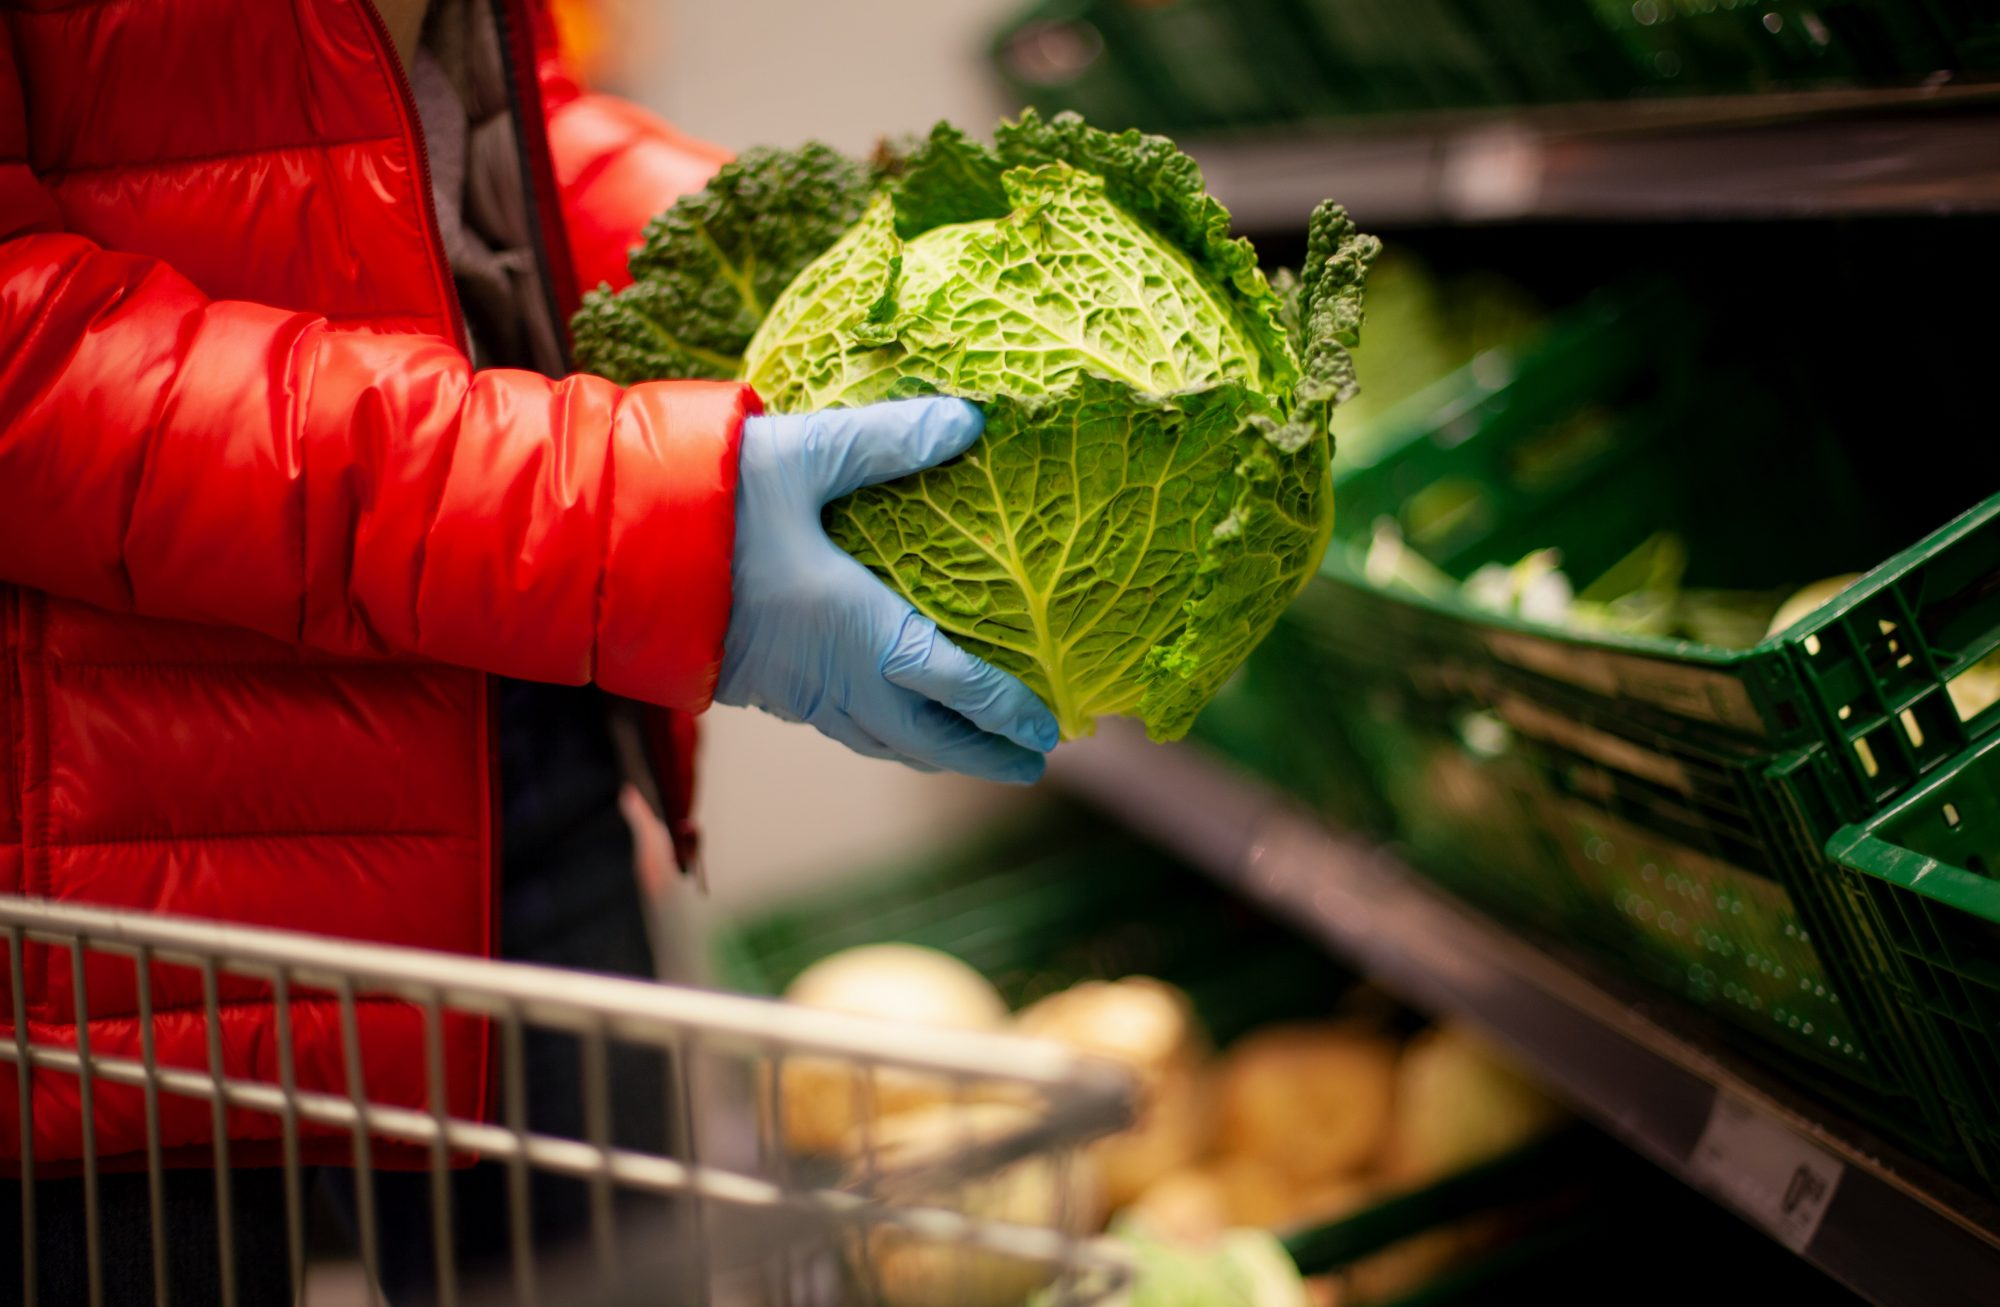 Woman picking out savoy cabbage at the supermarket, wearing protective gloves